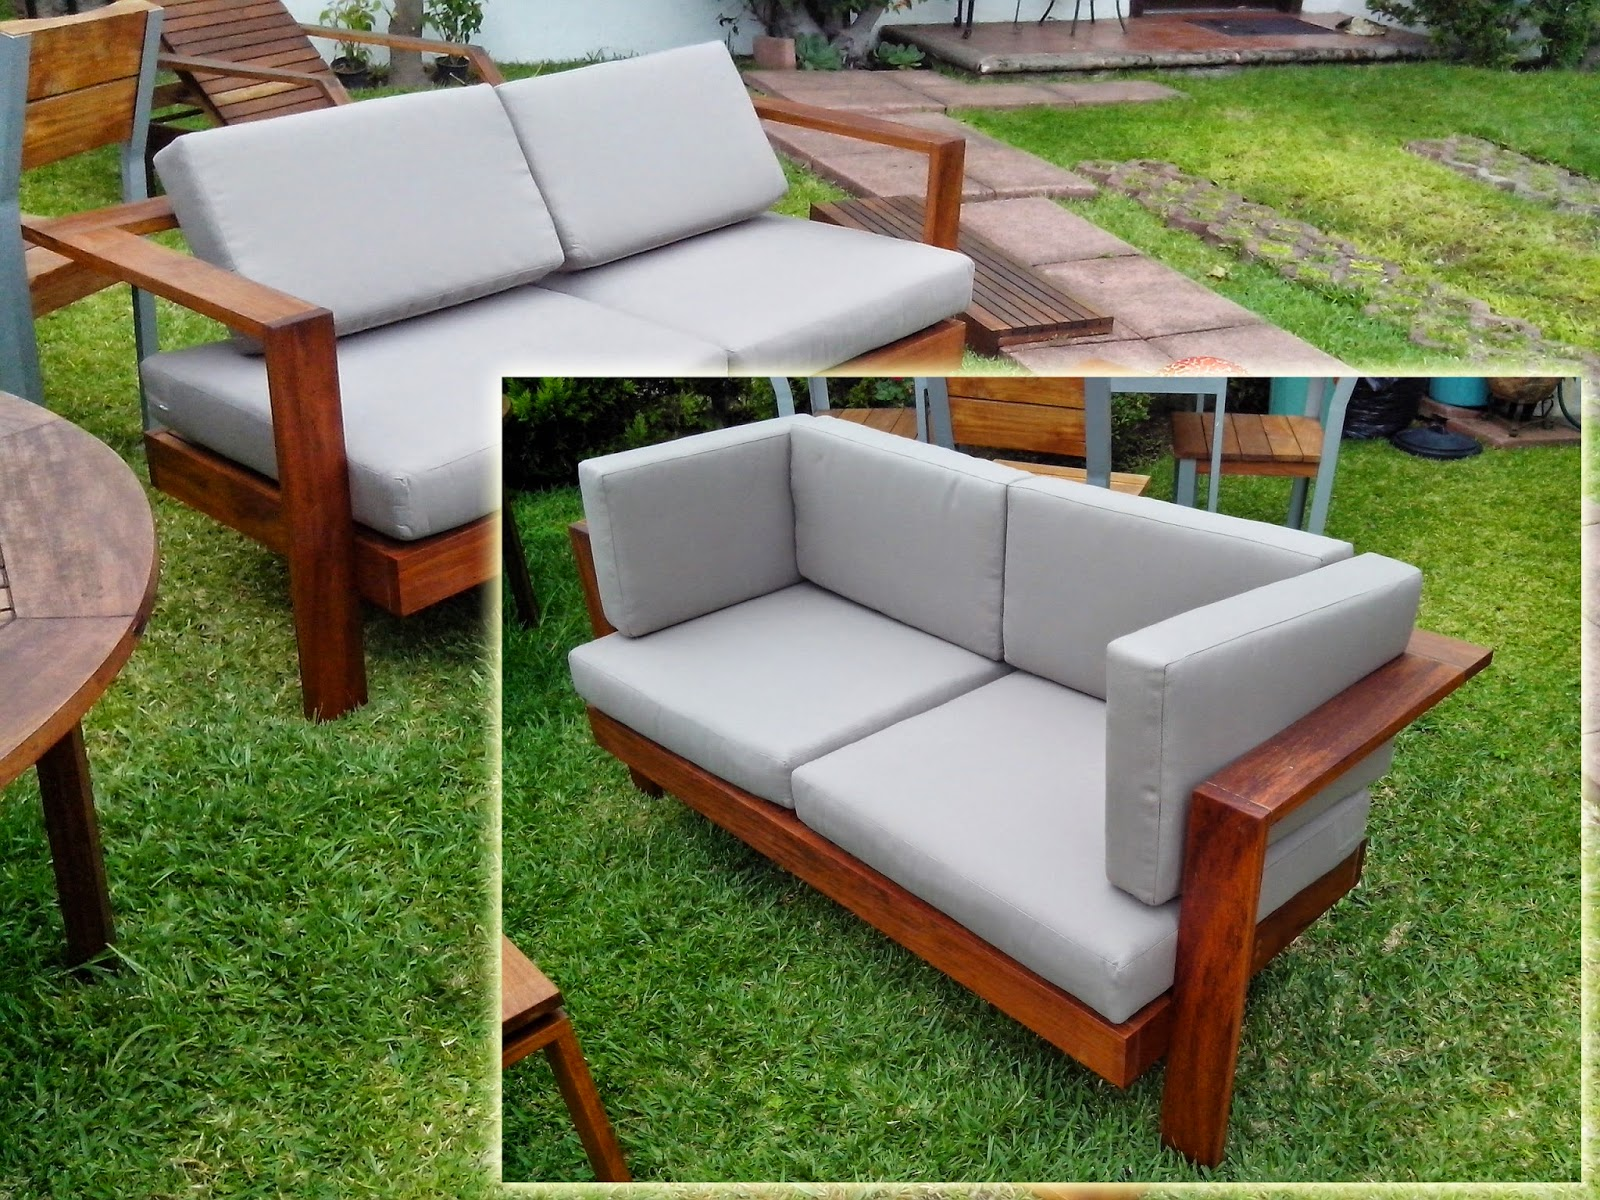 Arkydeck muebles exteriores para hotel - Muebles exterior madera ...